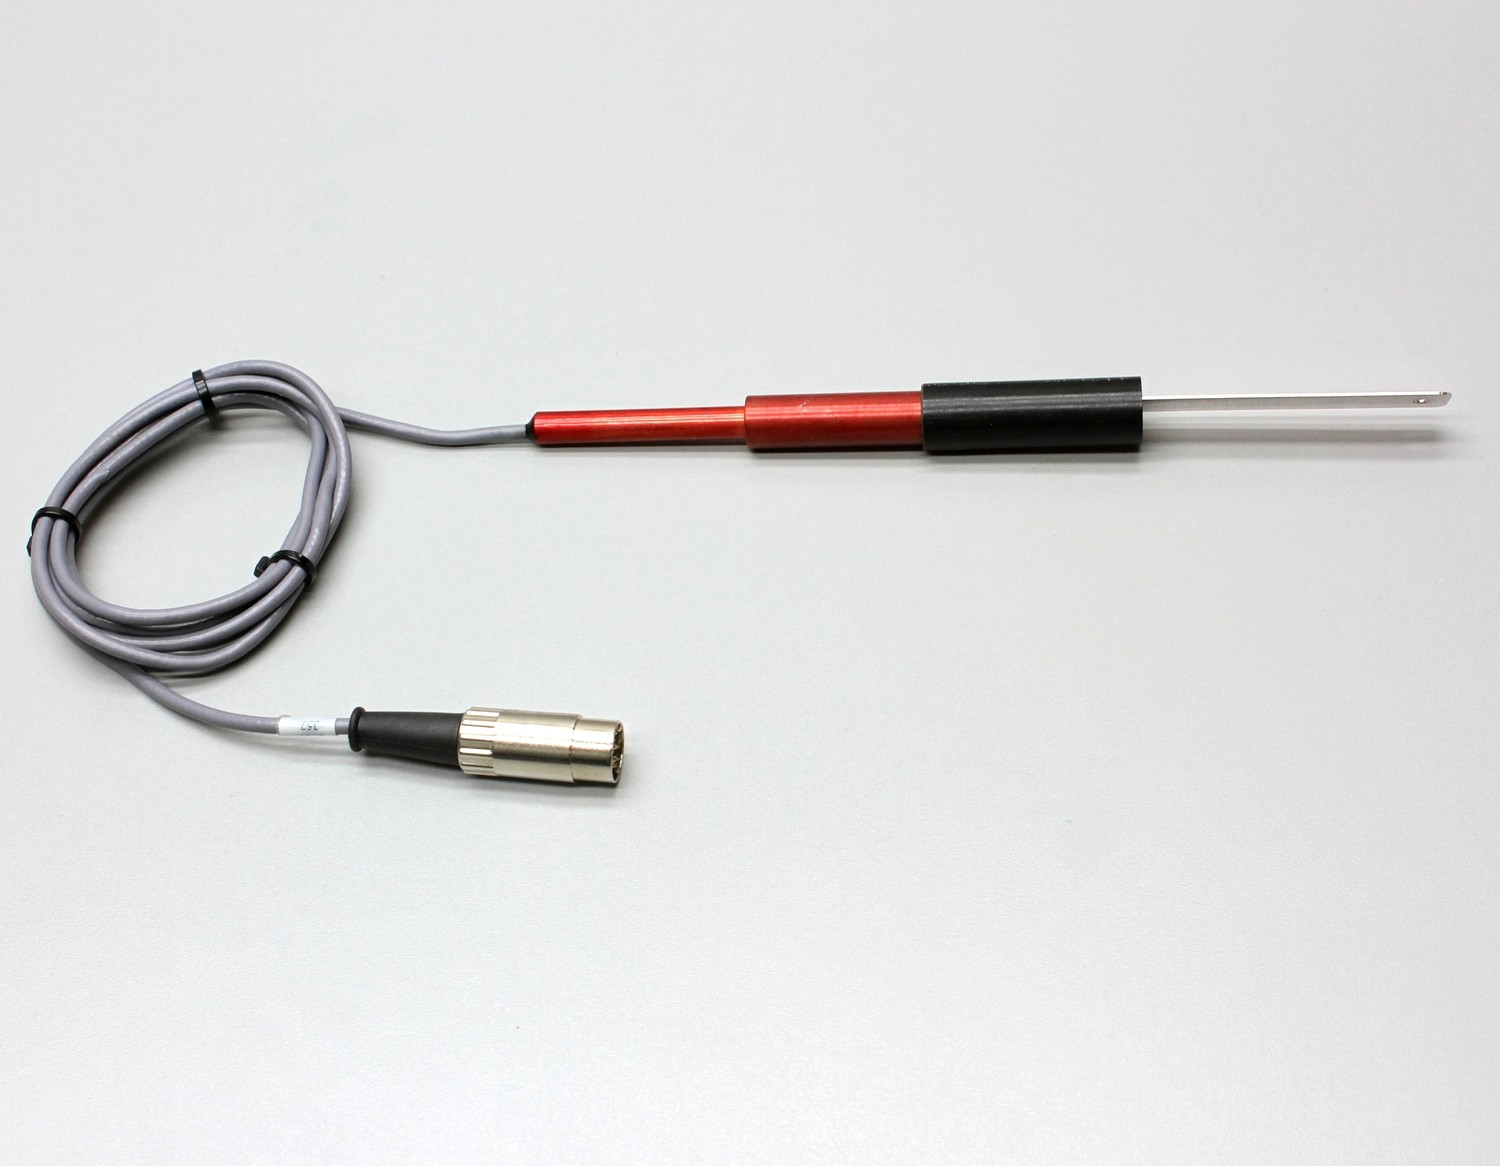 Force Transducer for the Teaching Lab (Range: 0.1 to 250g)